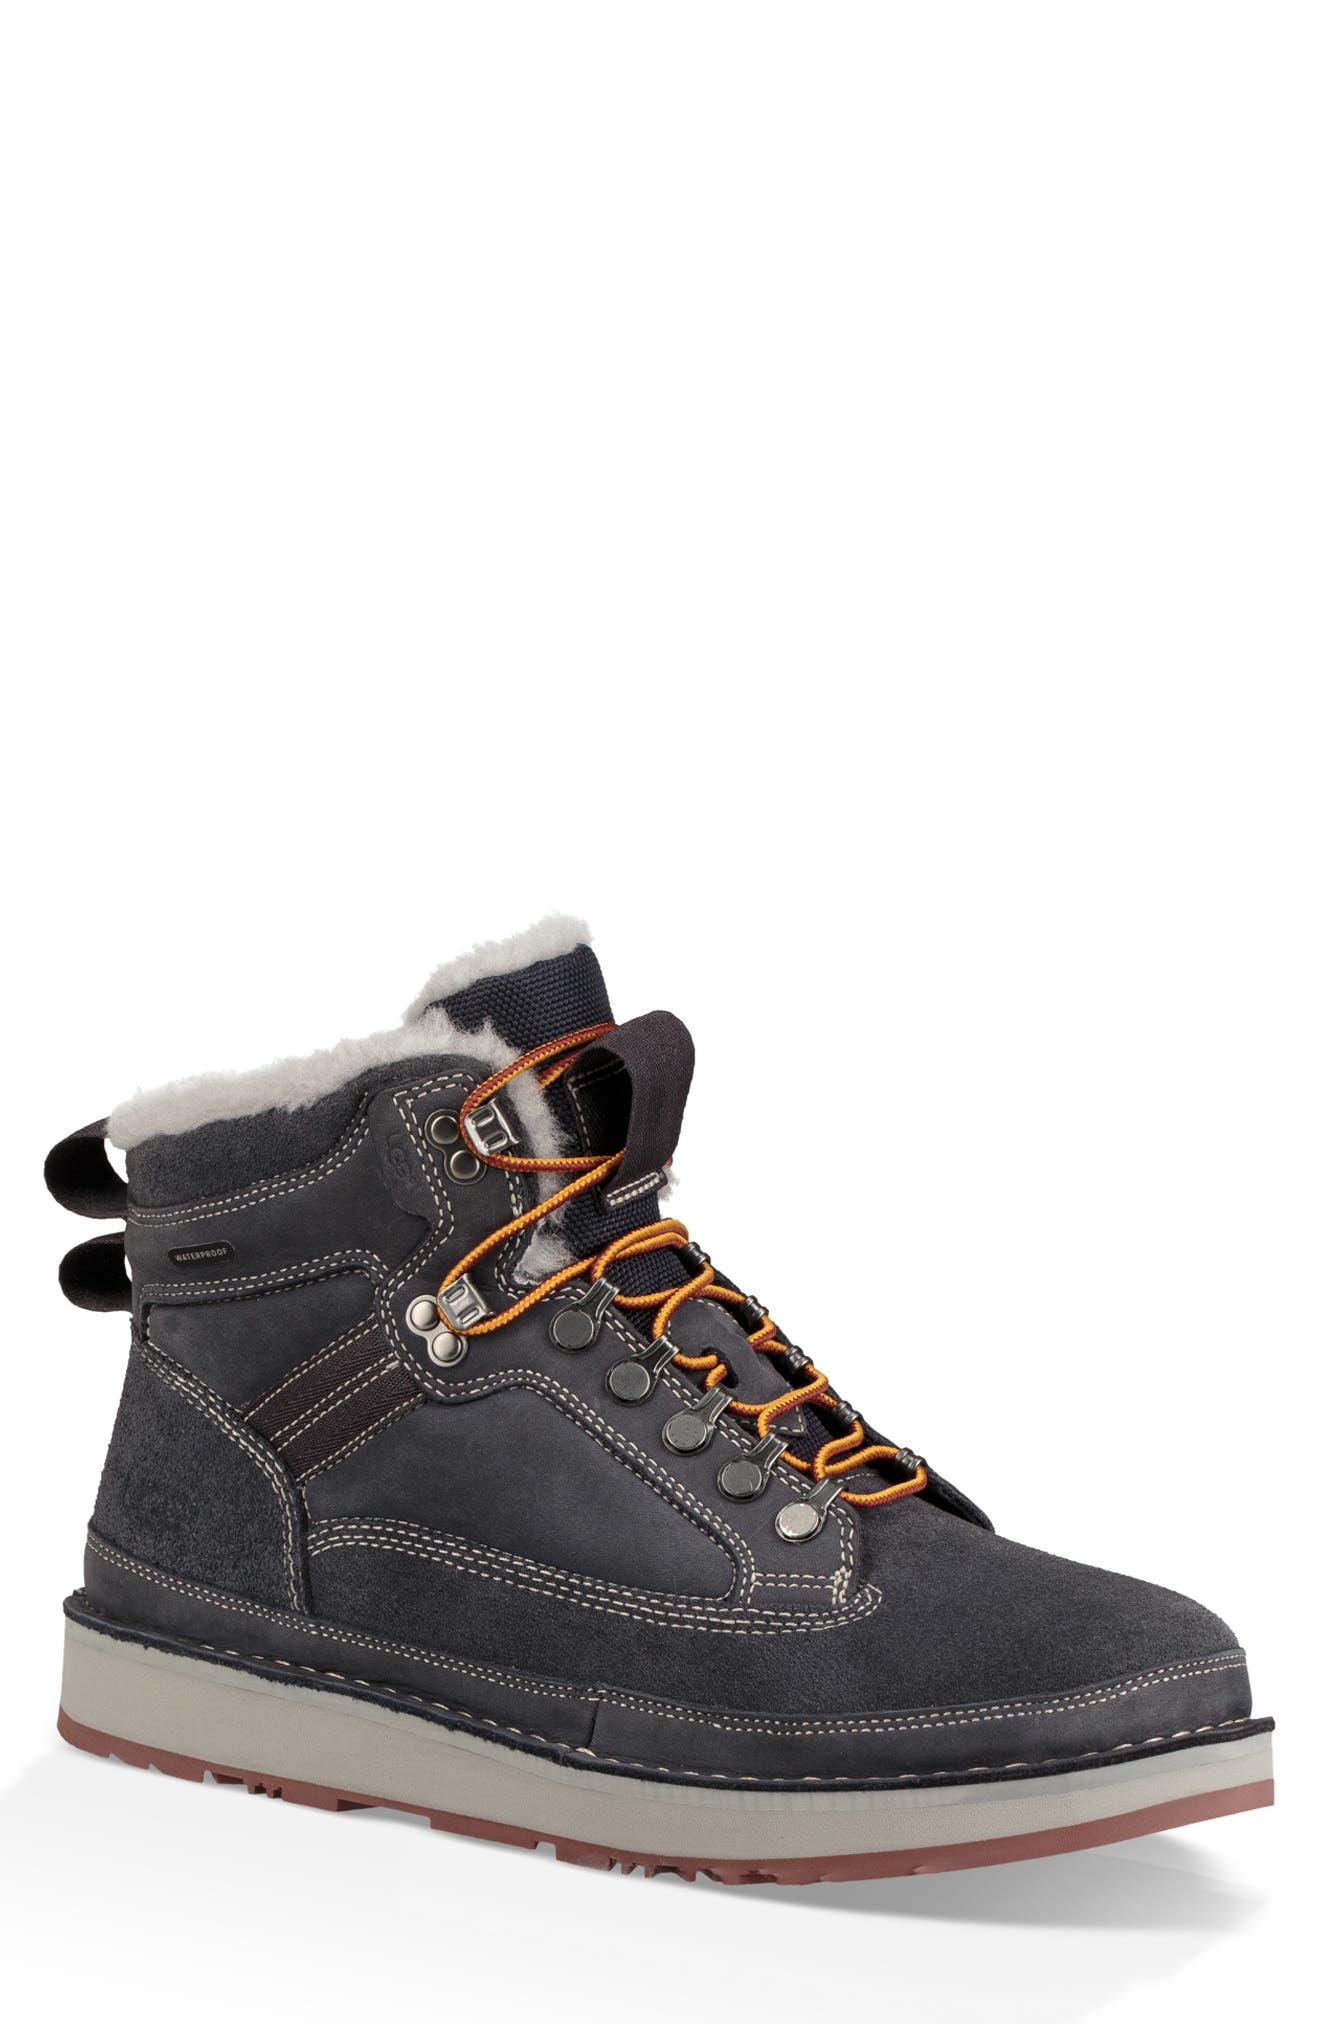 Ugg Avalanche Hiker Waterproof Boot